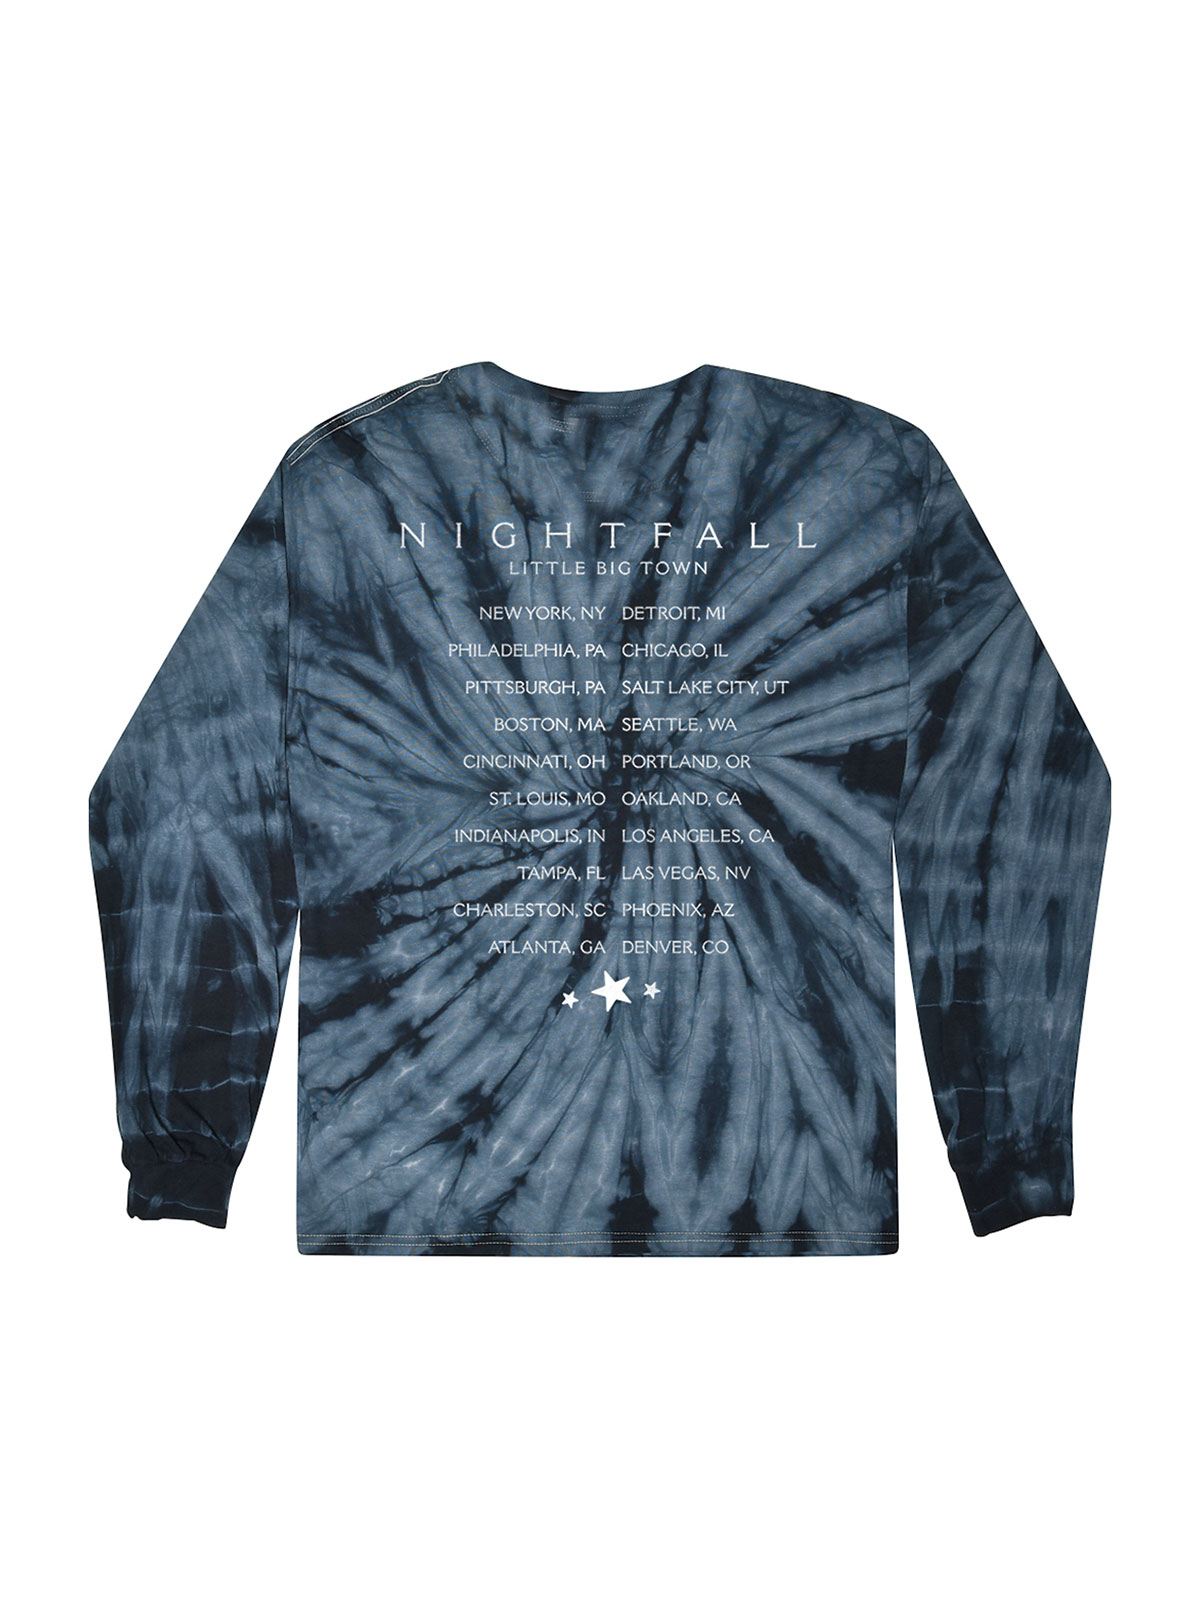 Nightfall Tie-Dye Dateback Longsleeve T-shirt